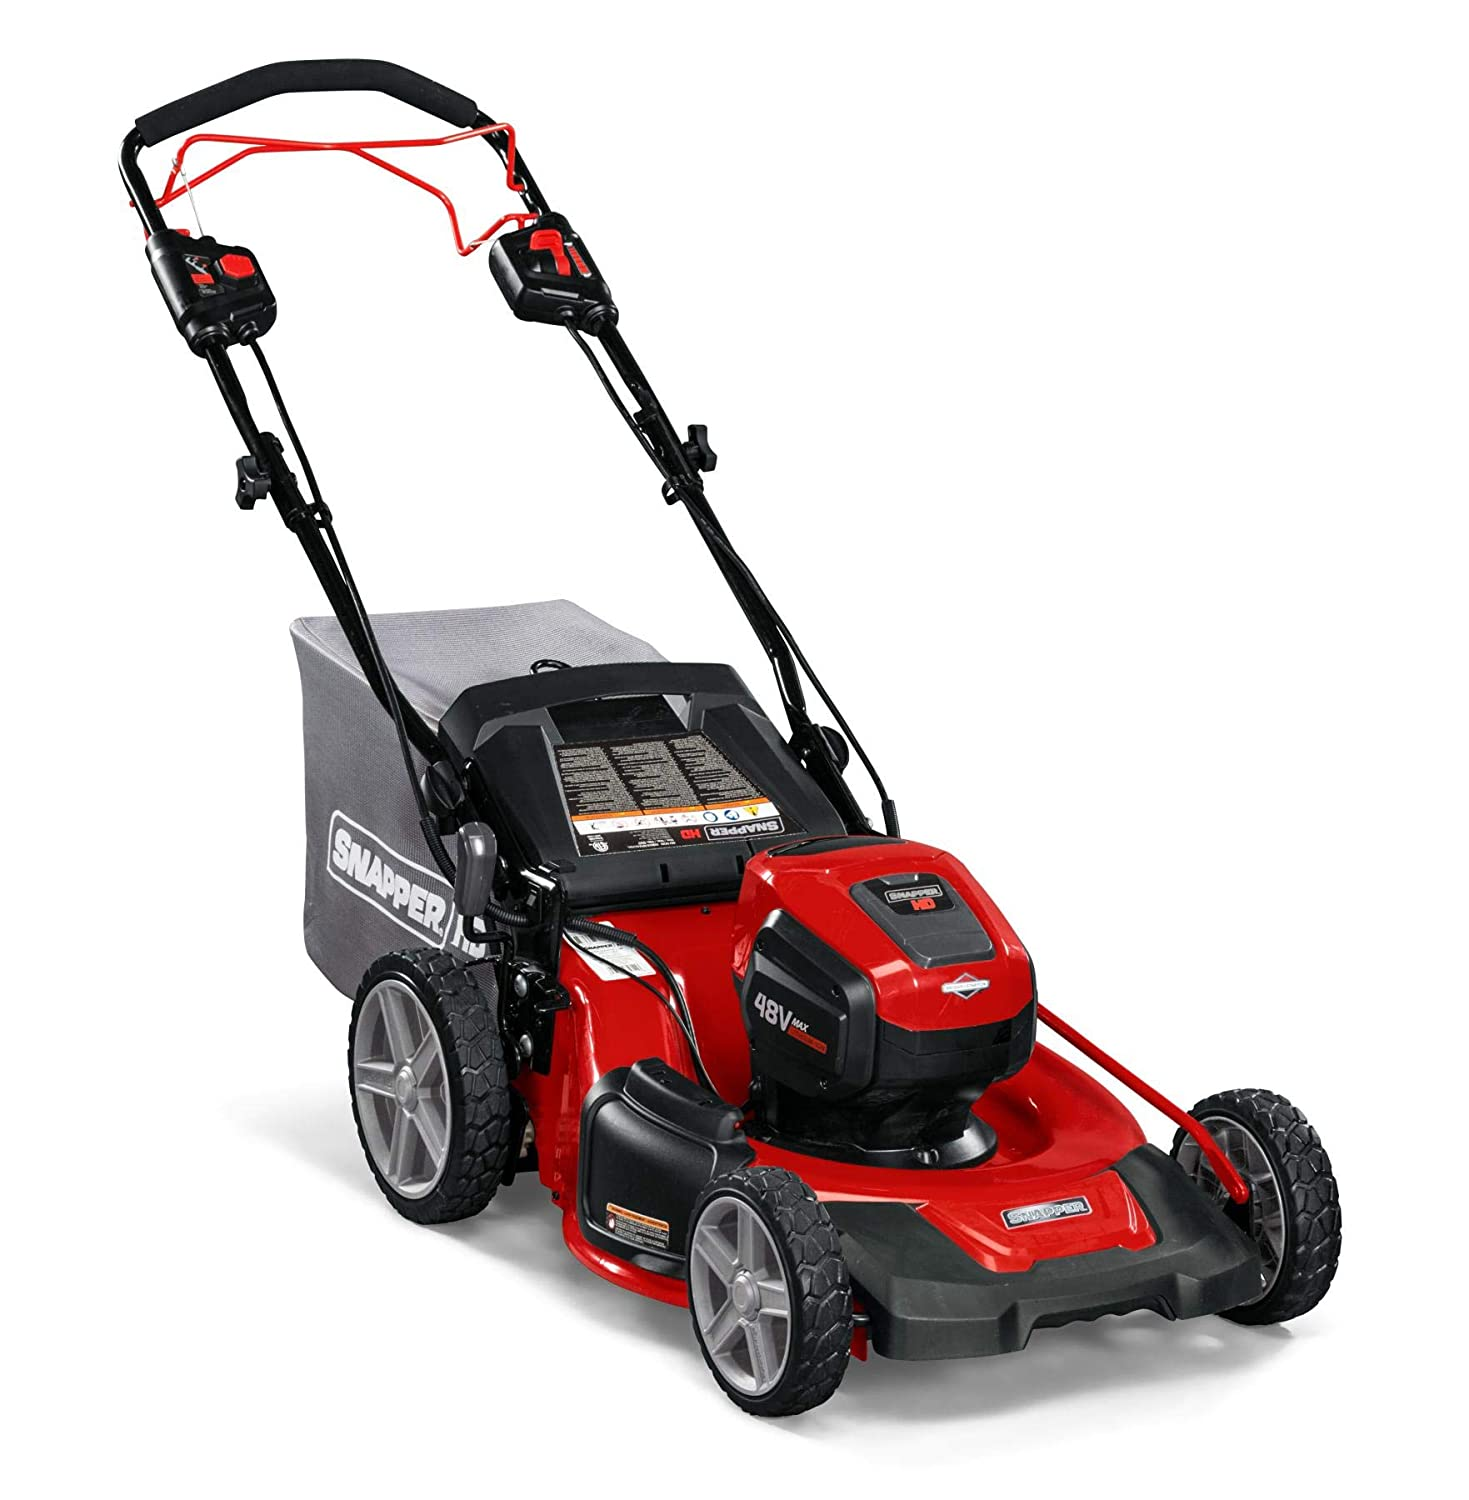 Snapper HD 48V MAX Electric Cordless Self-Propelled Lawnmower without battery and charger, 2691565, 20SPWM48